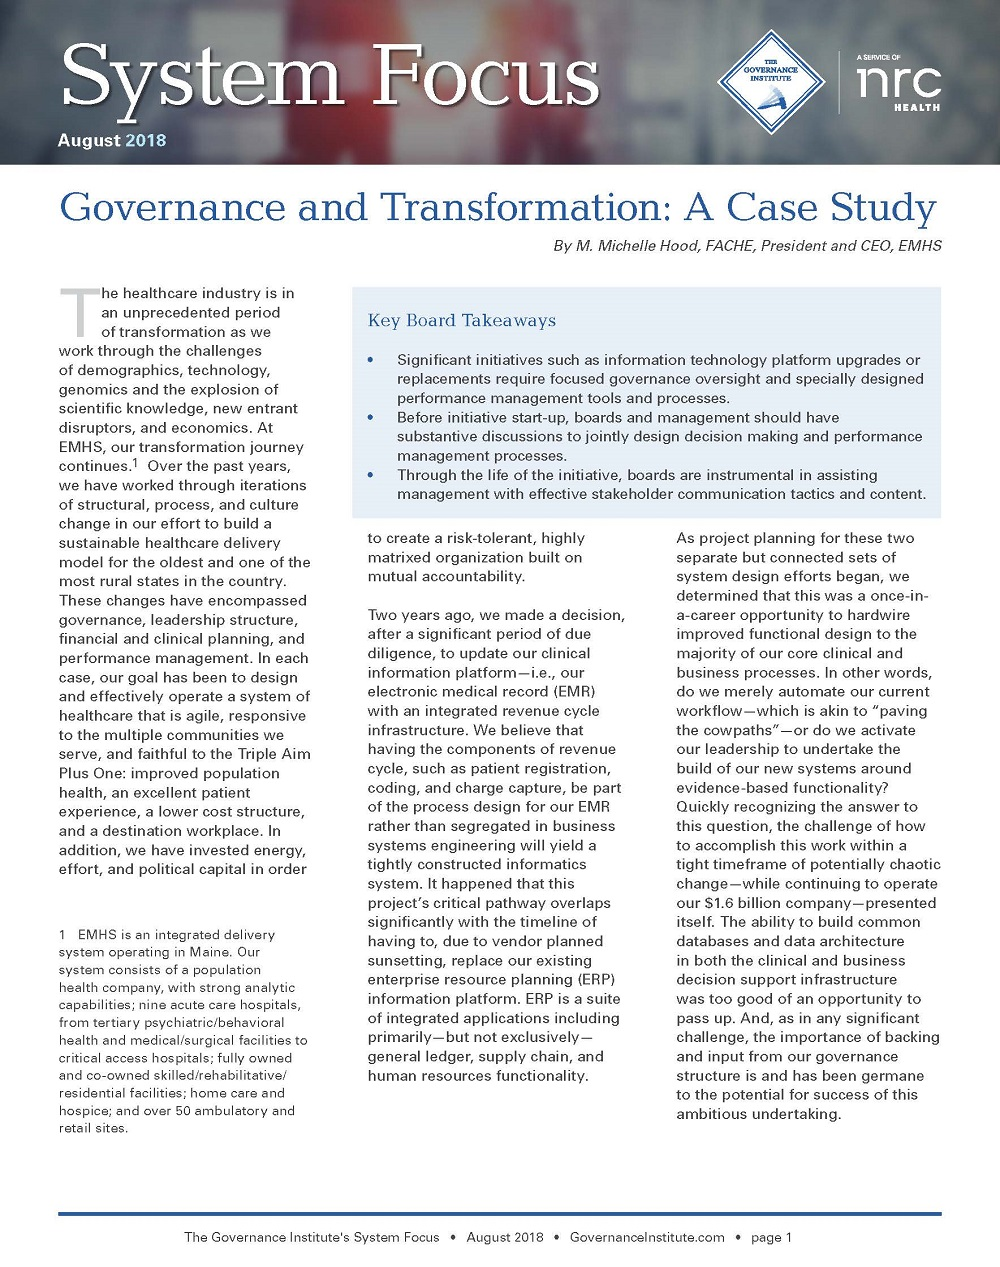 system focus articles the governance institute